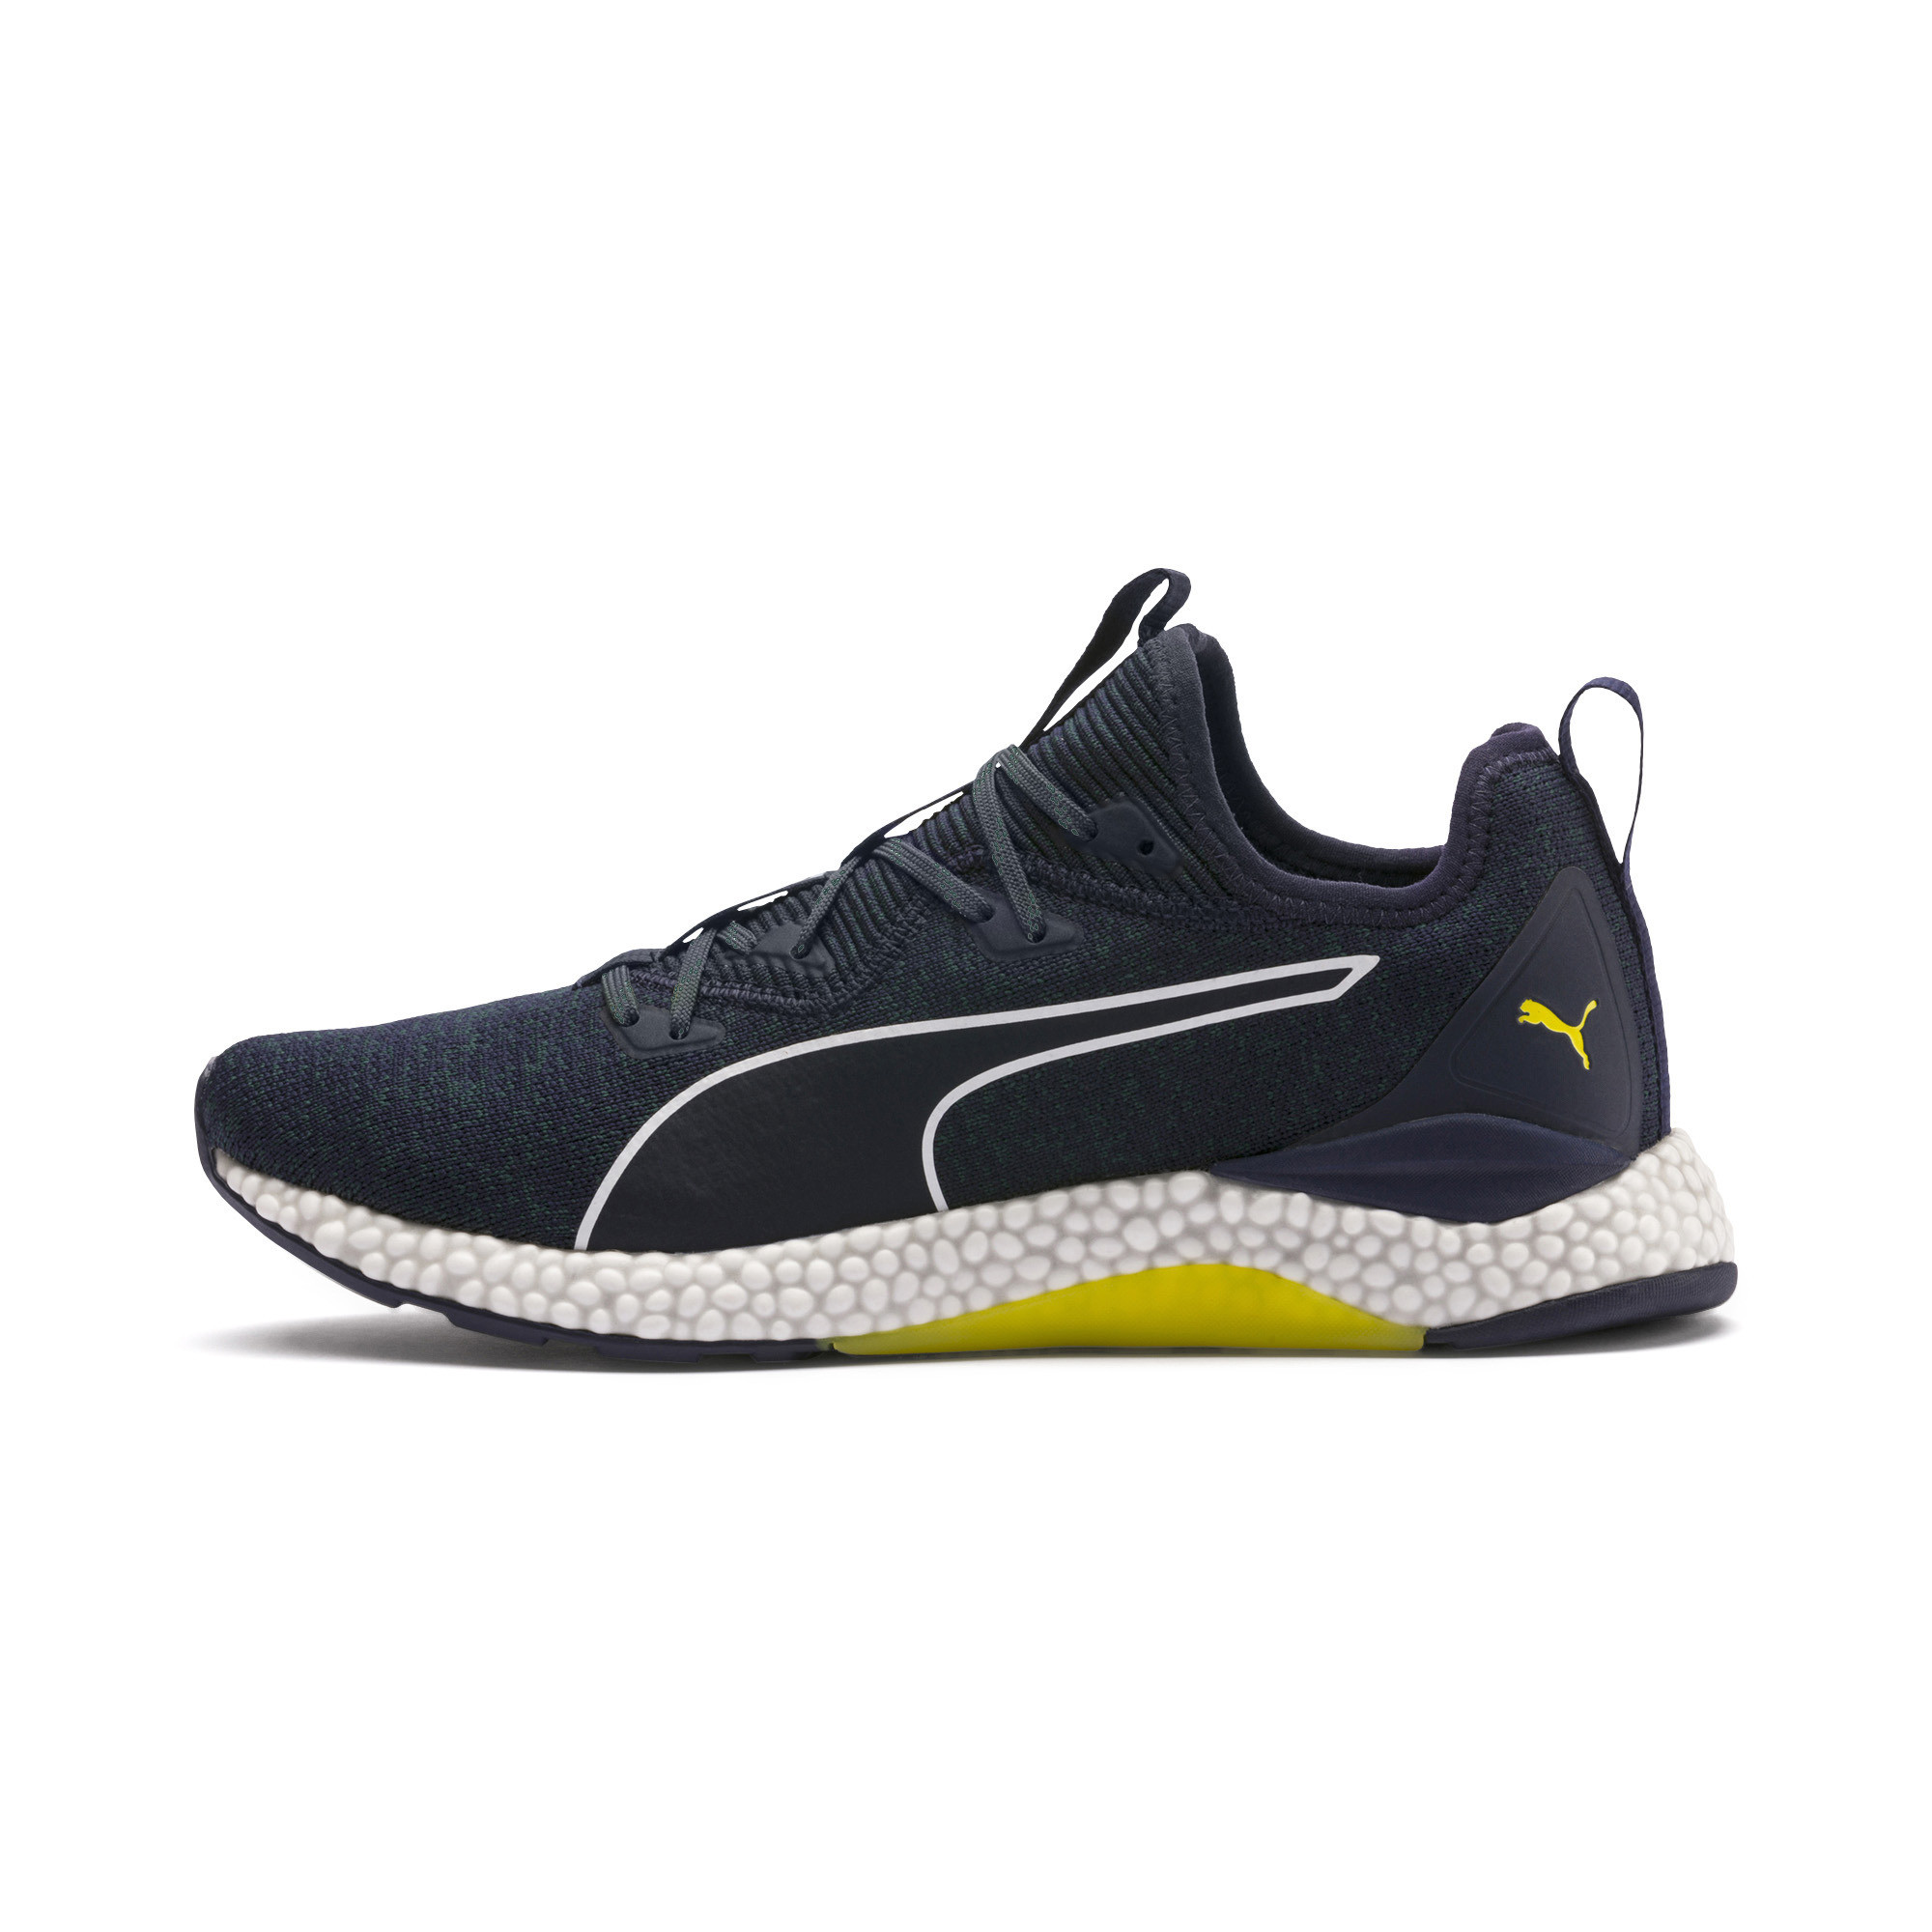 sports shoes e4ad4 6ab51 Image Puma Hybrid Runner Men s Running Shoes  1